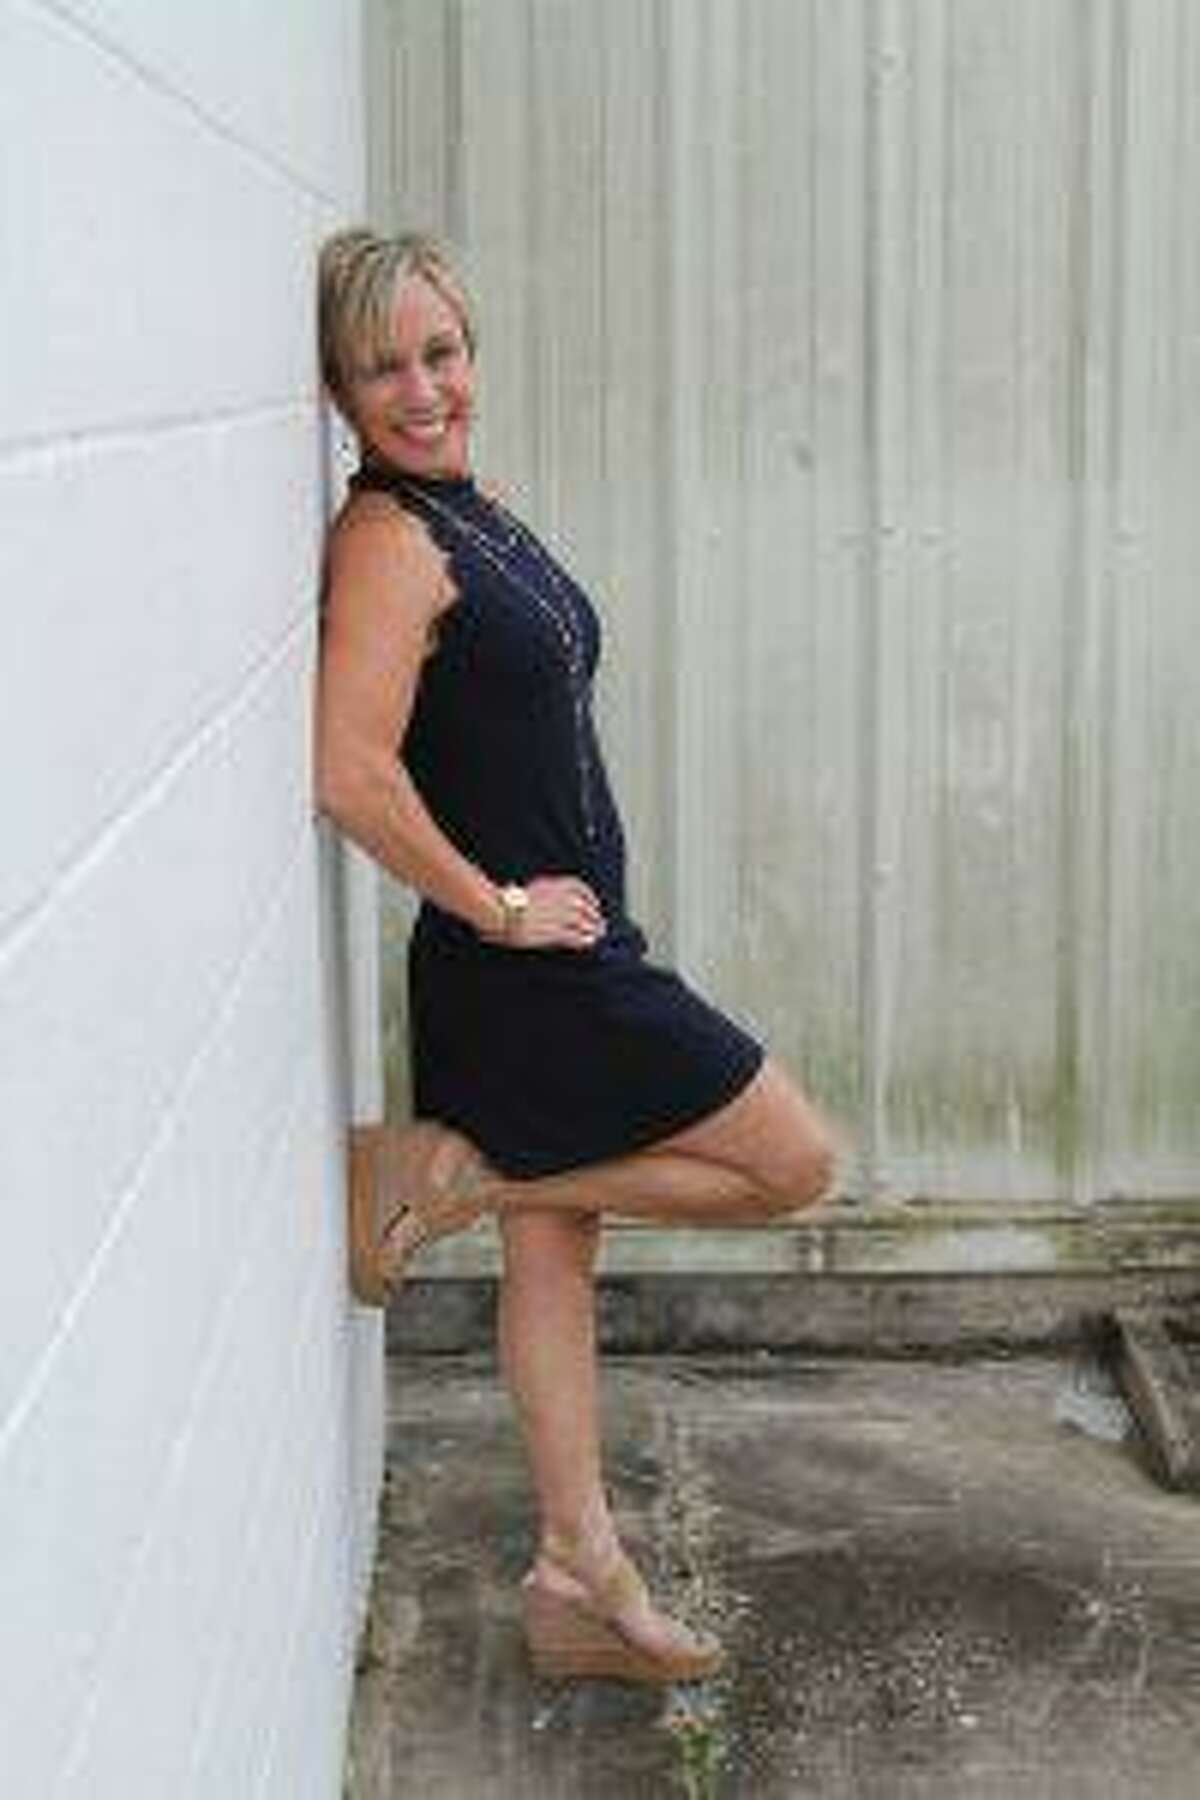 Stacey Wilms is celebrating her 30 year anniversary at Stacey's Dance Studio in Kingwood.